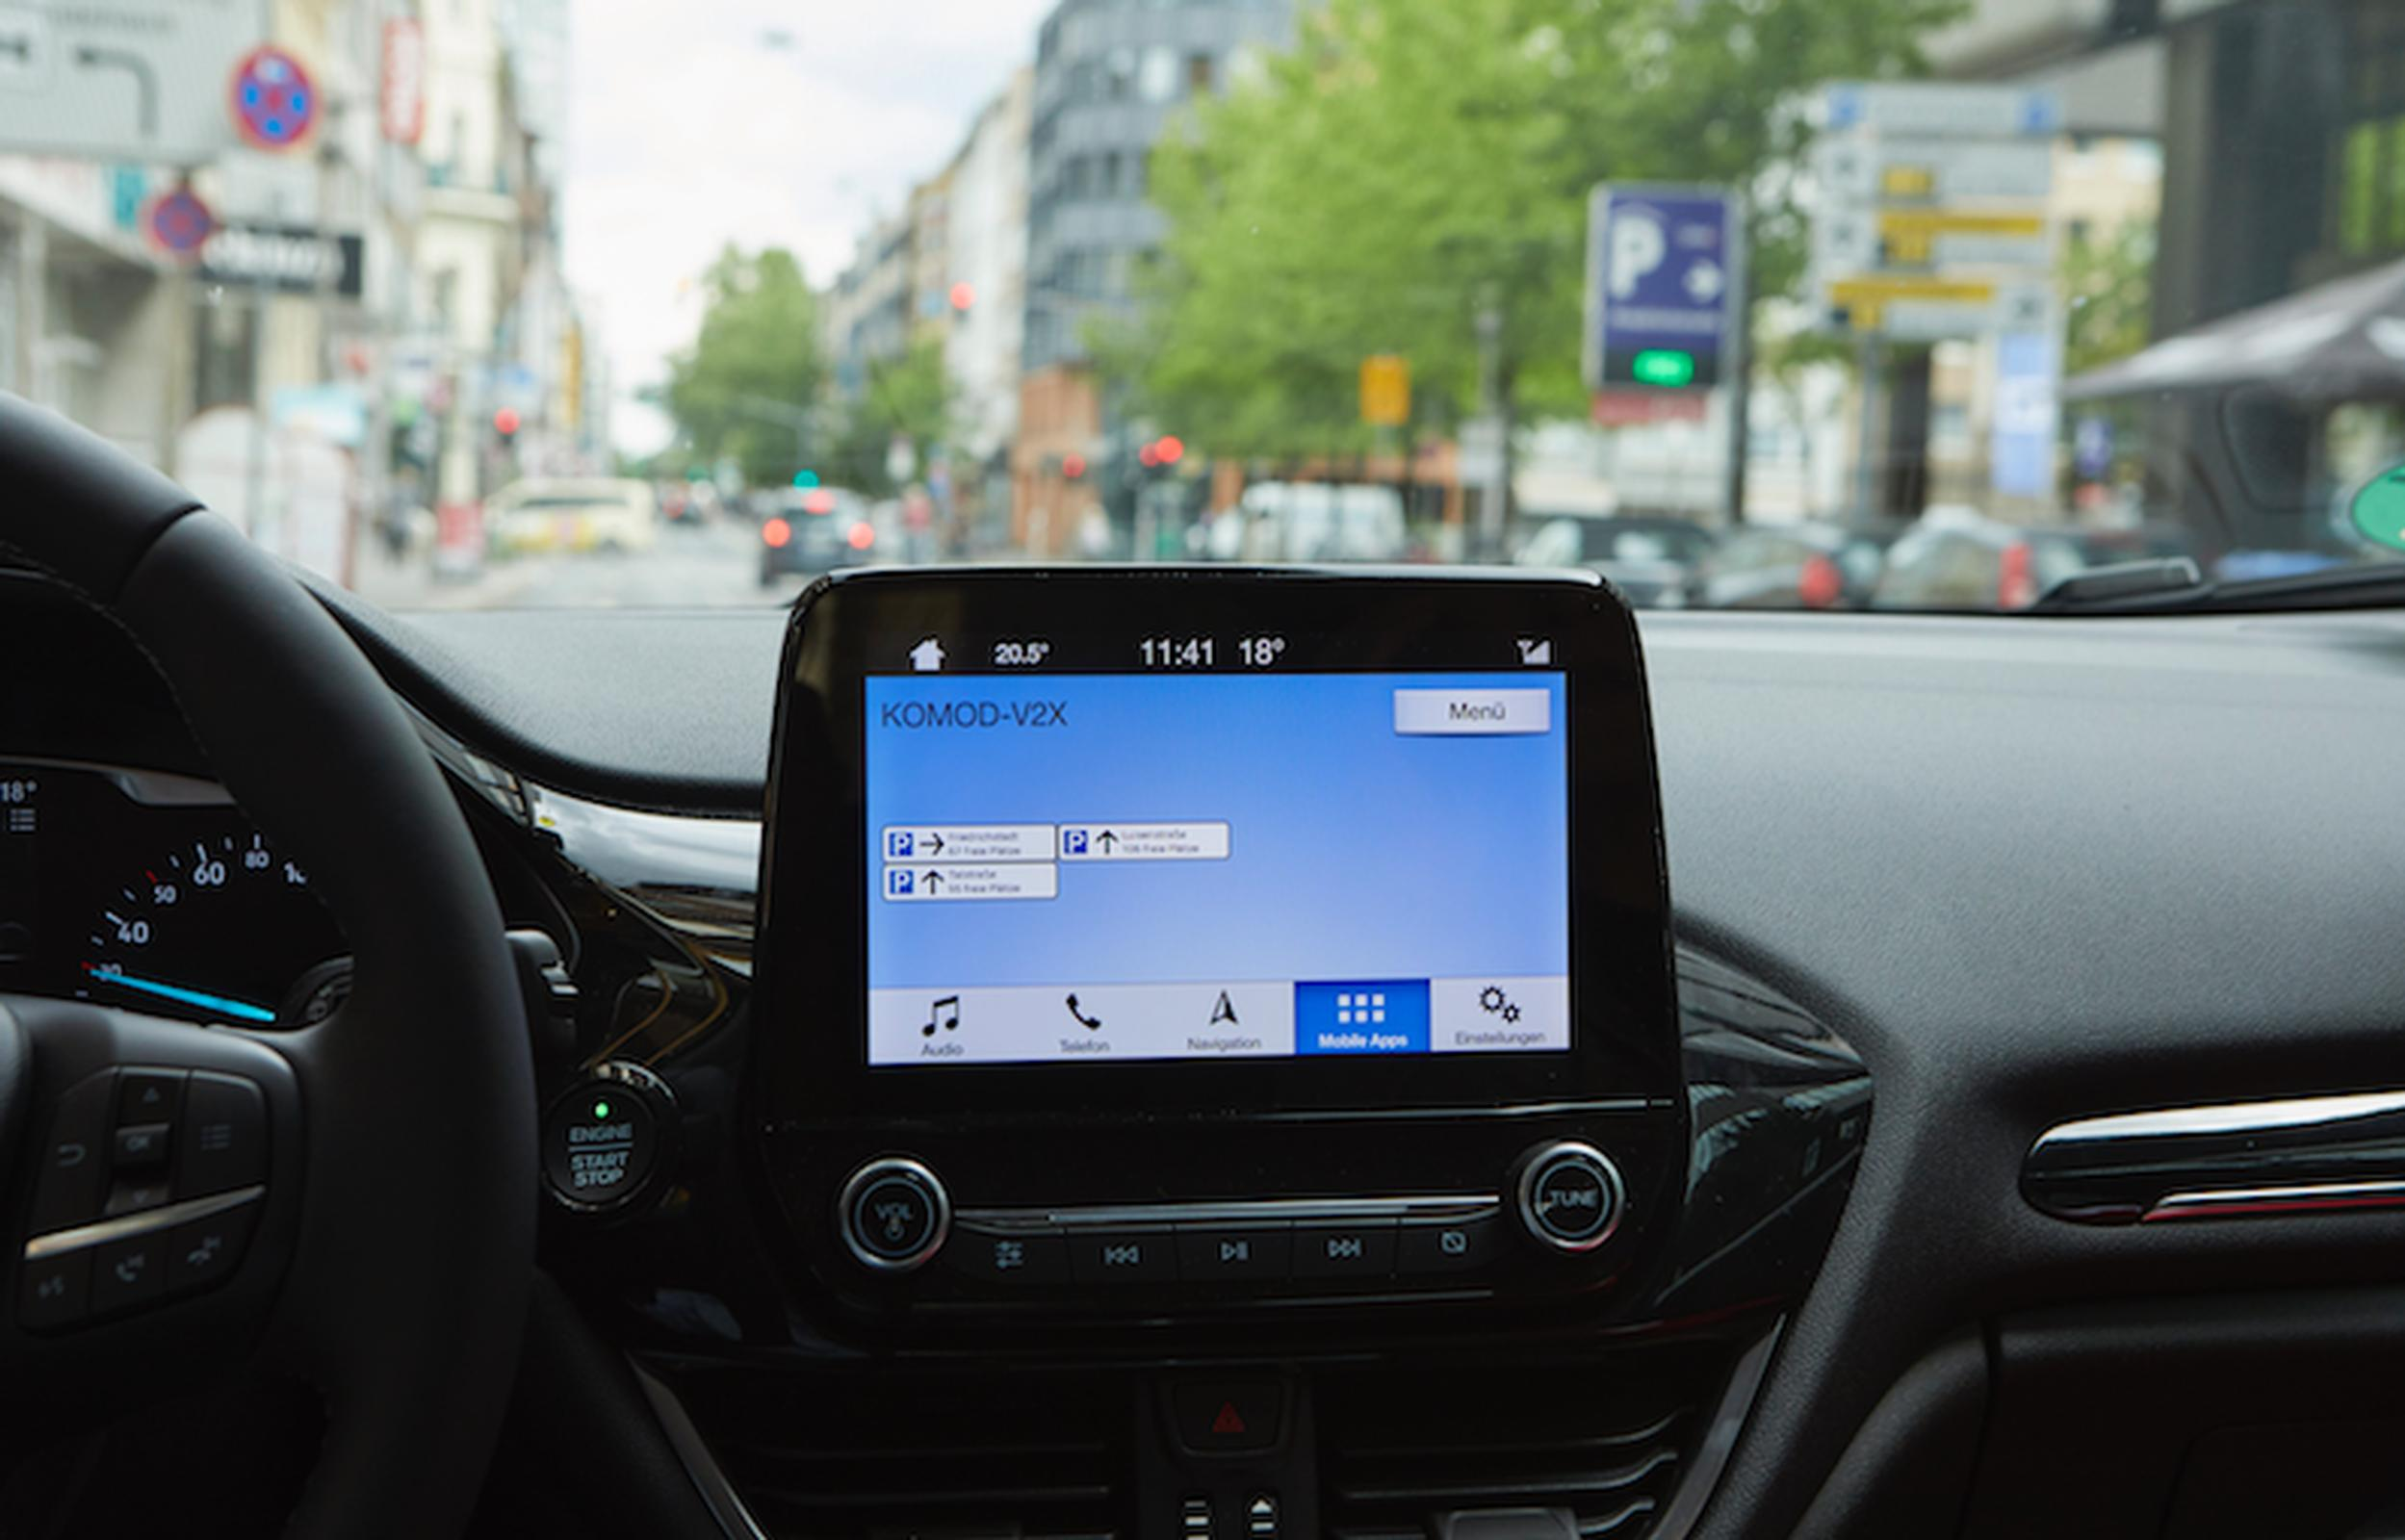 Parking Space Guidance is being trialled by Ford and Vodafone as part of the KoMoD (Kooperative Mobilität im digitalen Testfeld Düsseldorf) programme